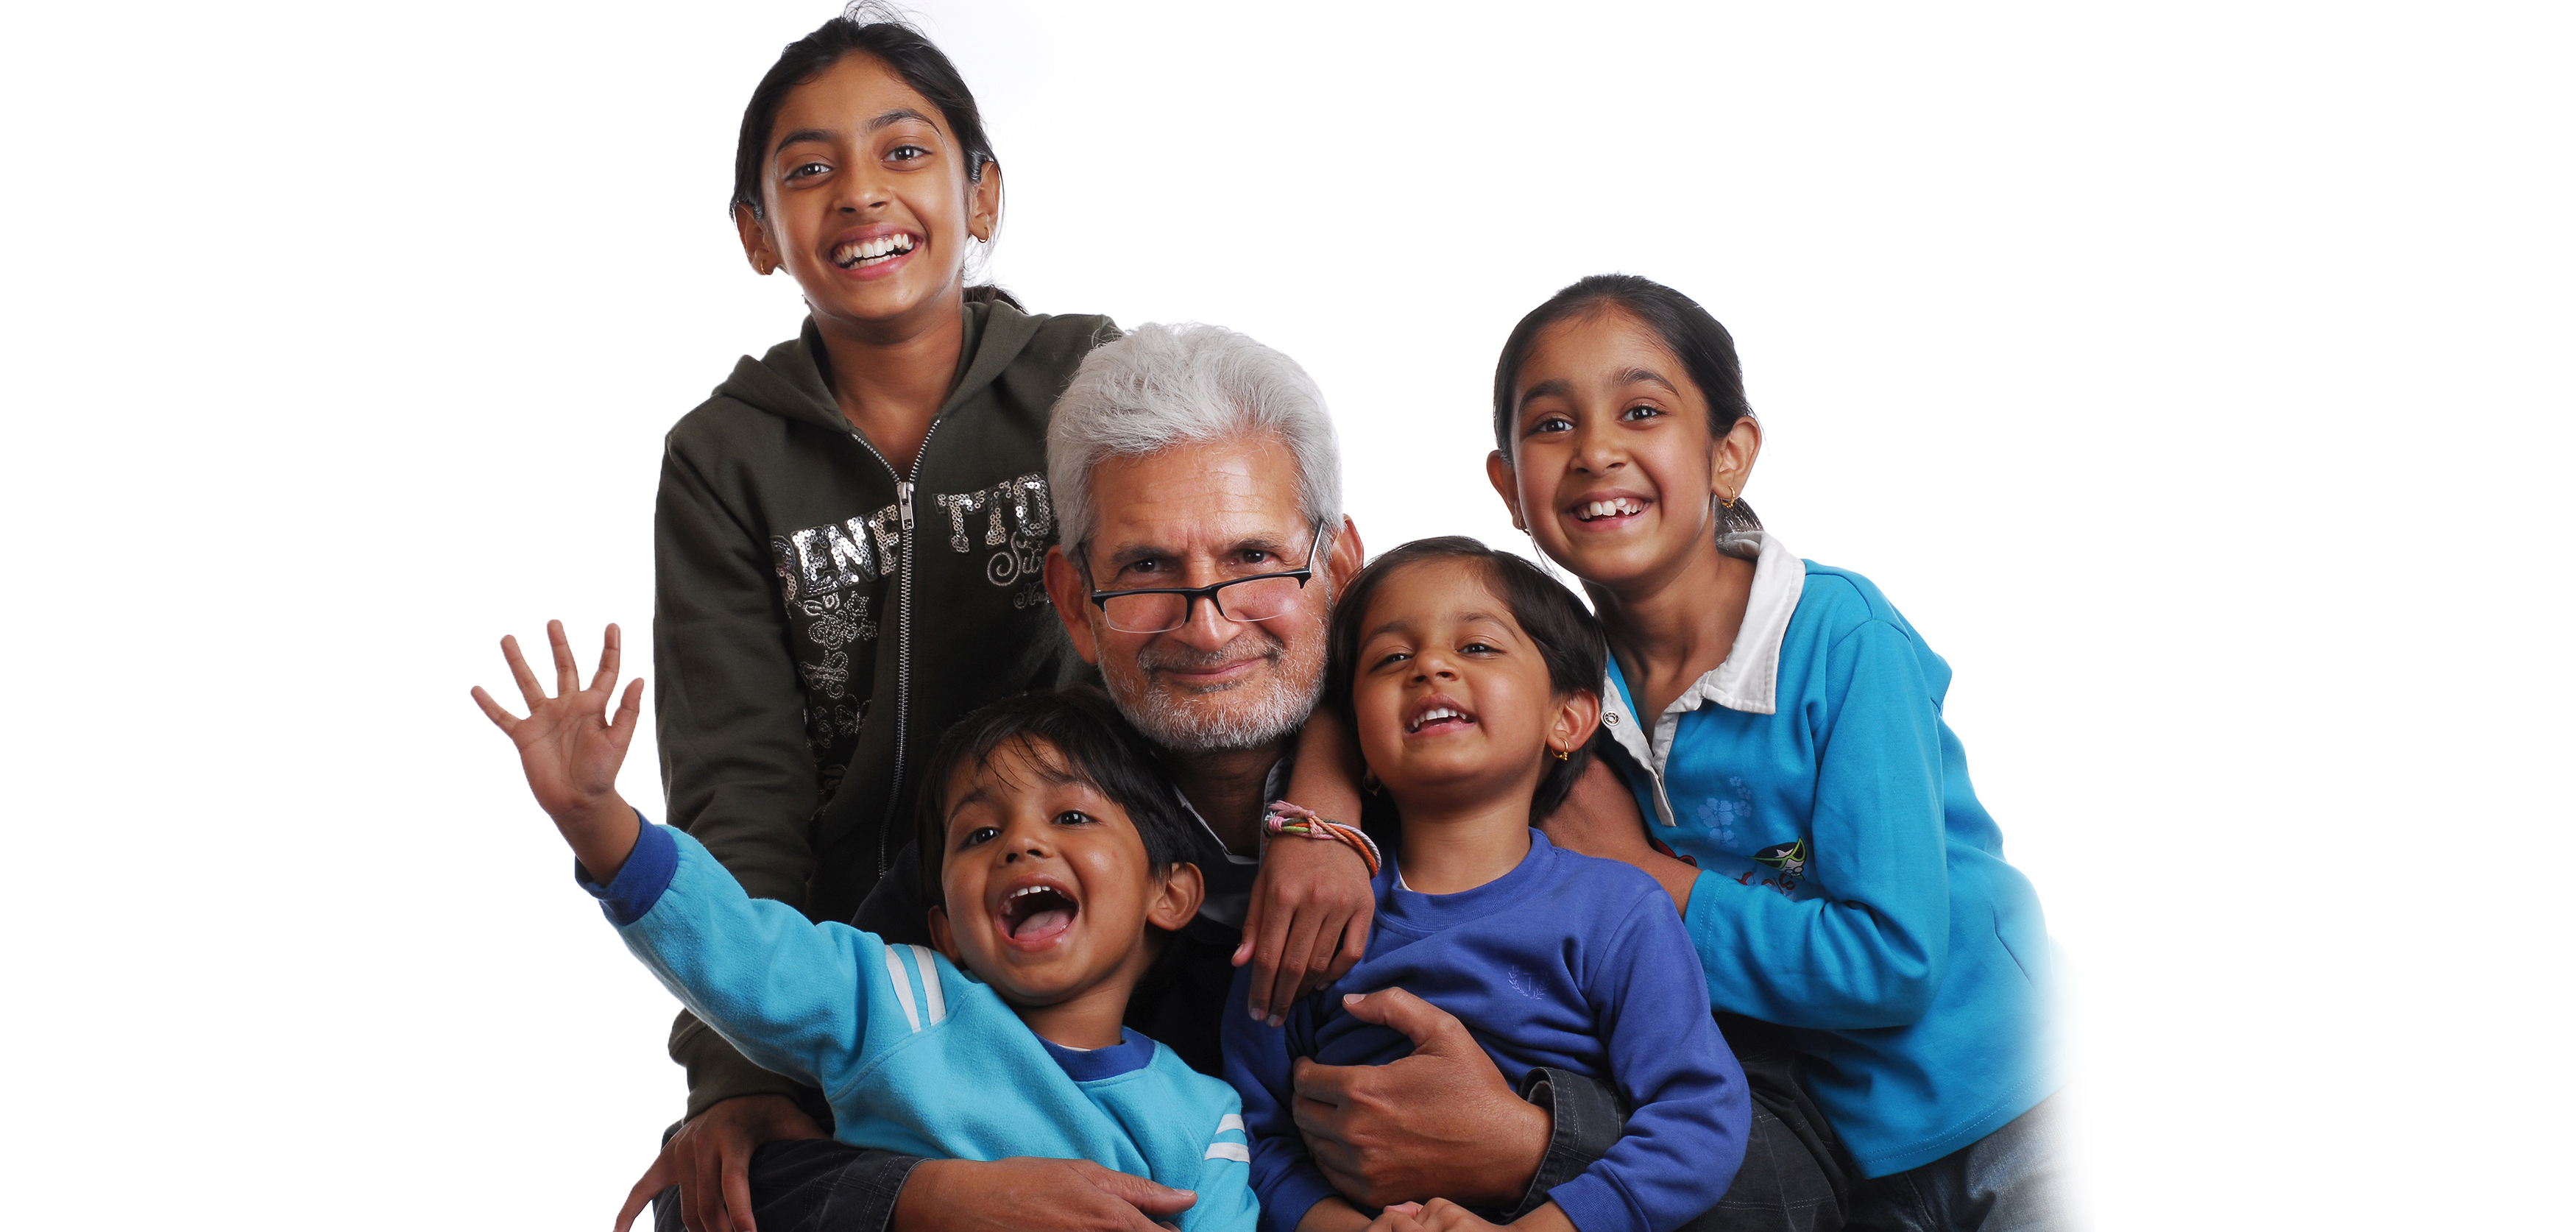 Indian_Family_27271702_RGB_MR_WIDE